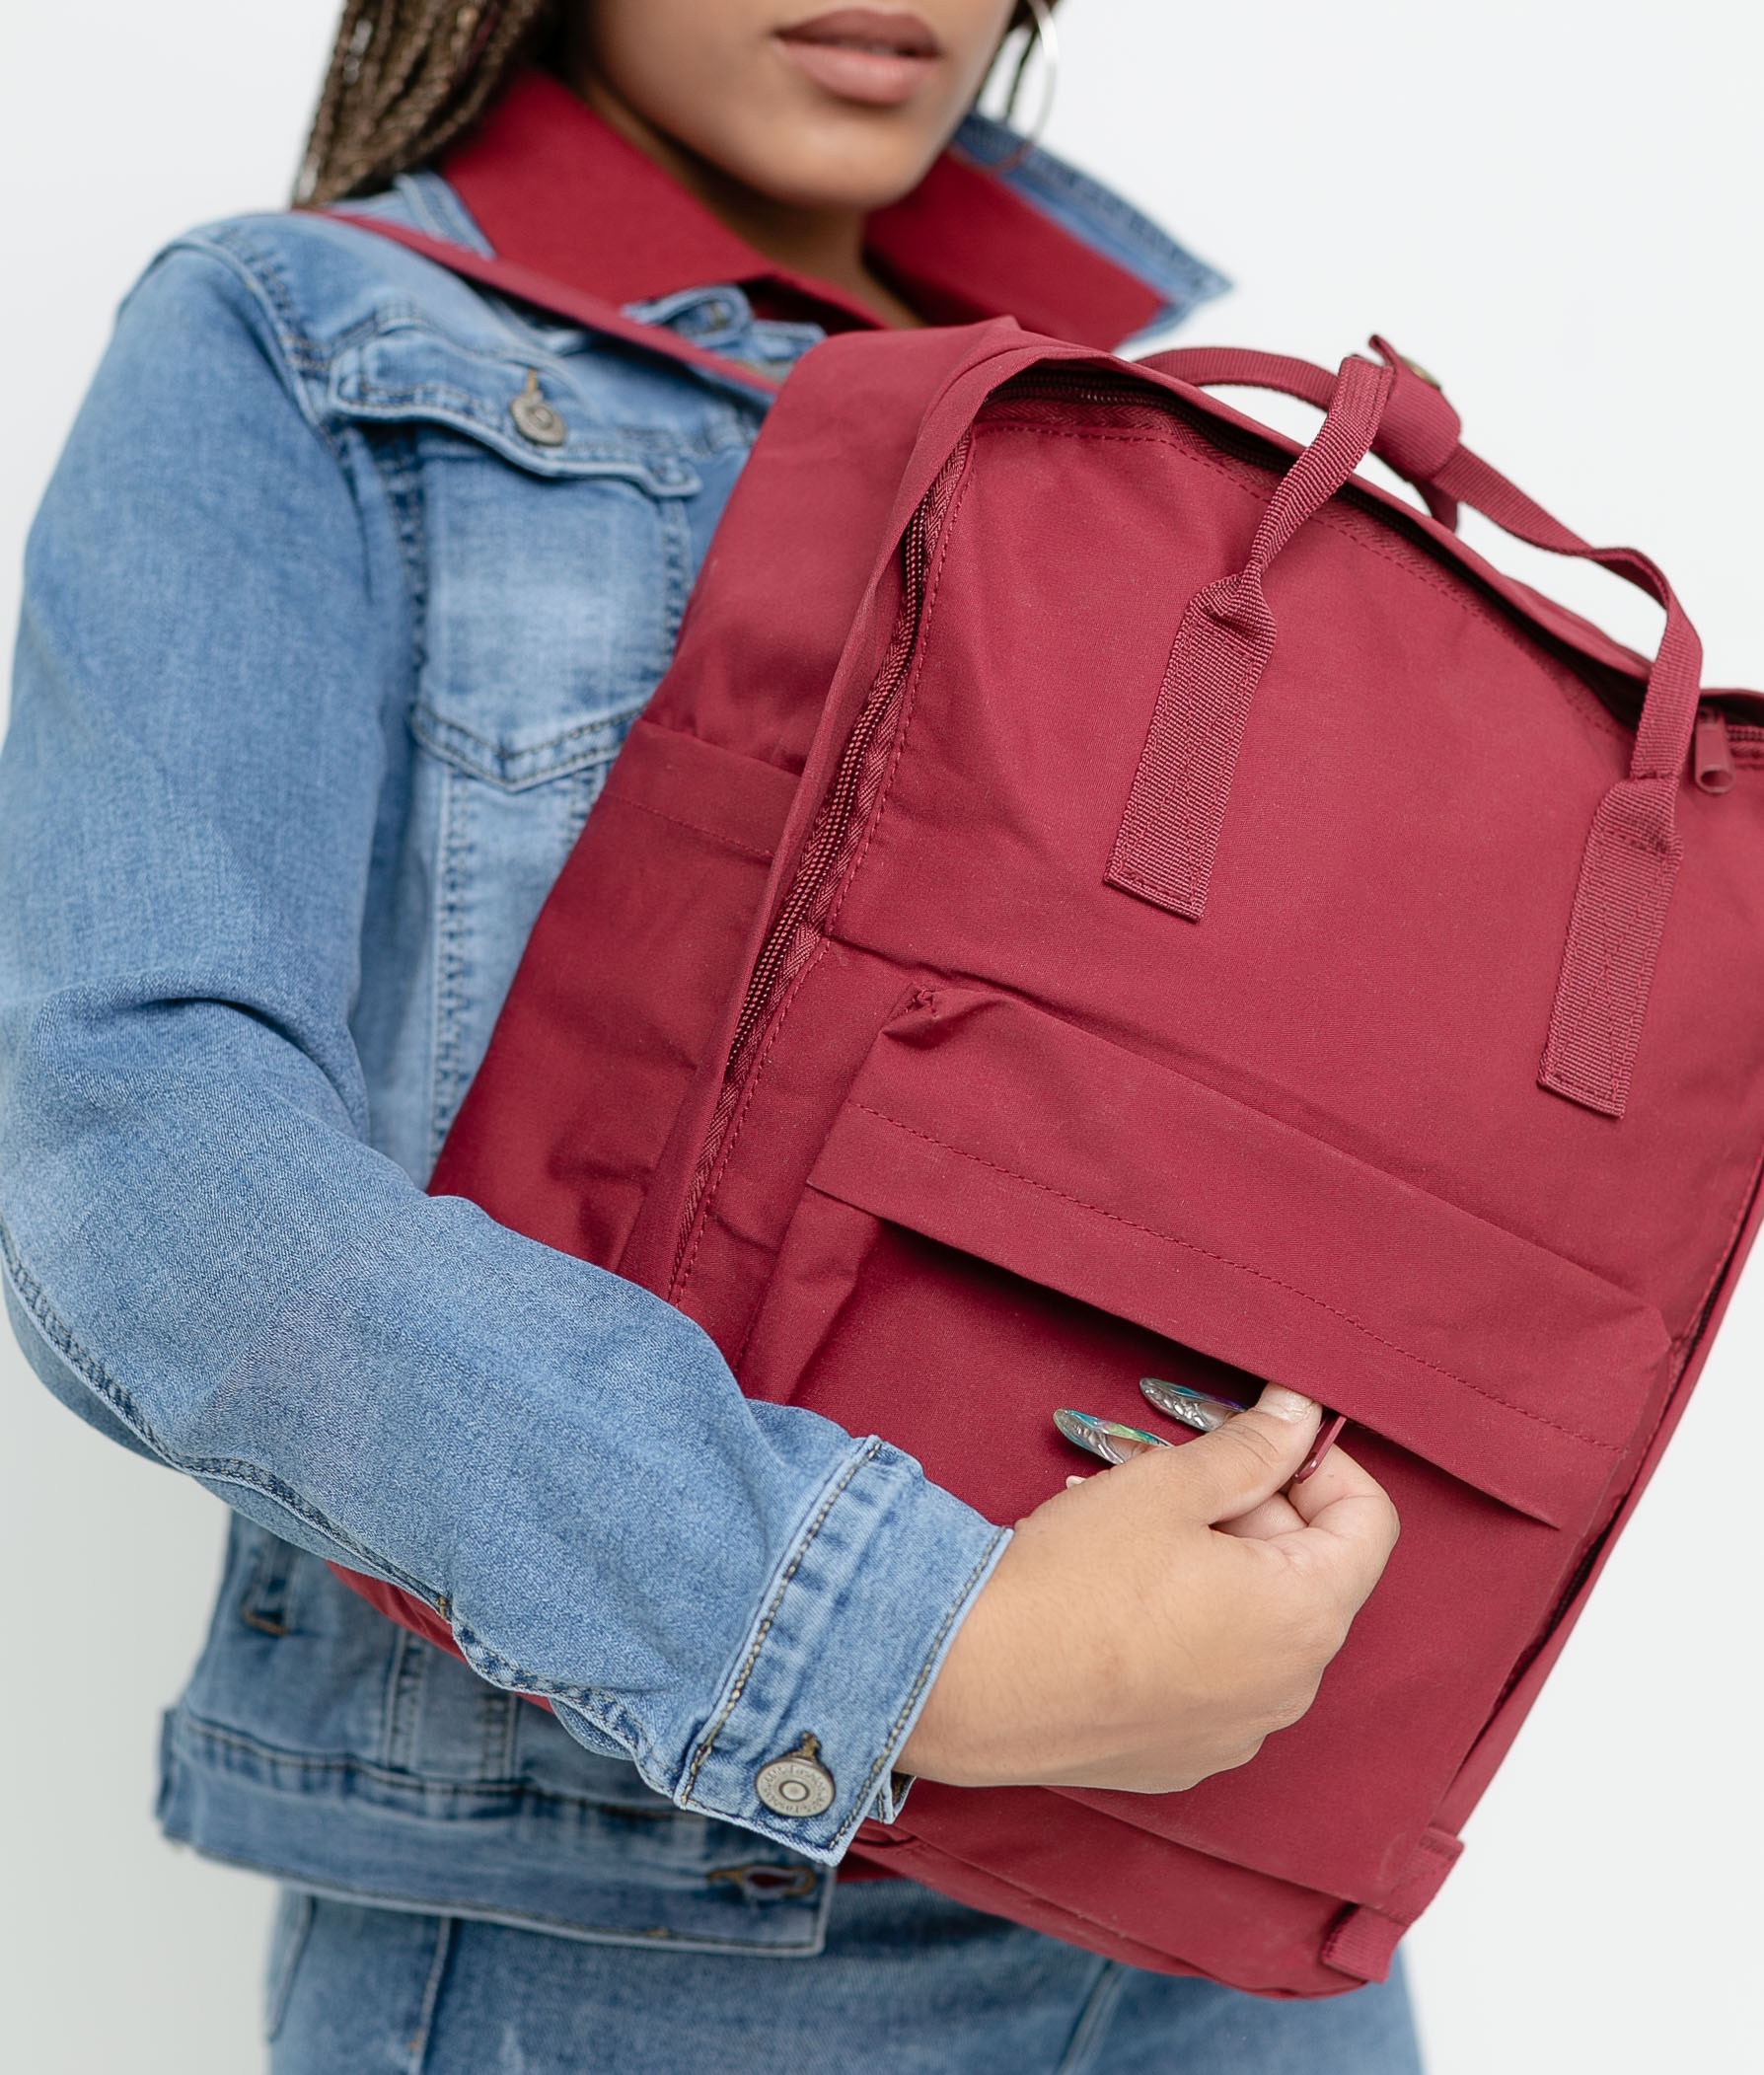 VERILO BACKPACK - MAROON